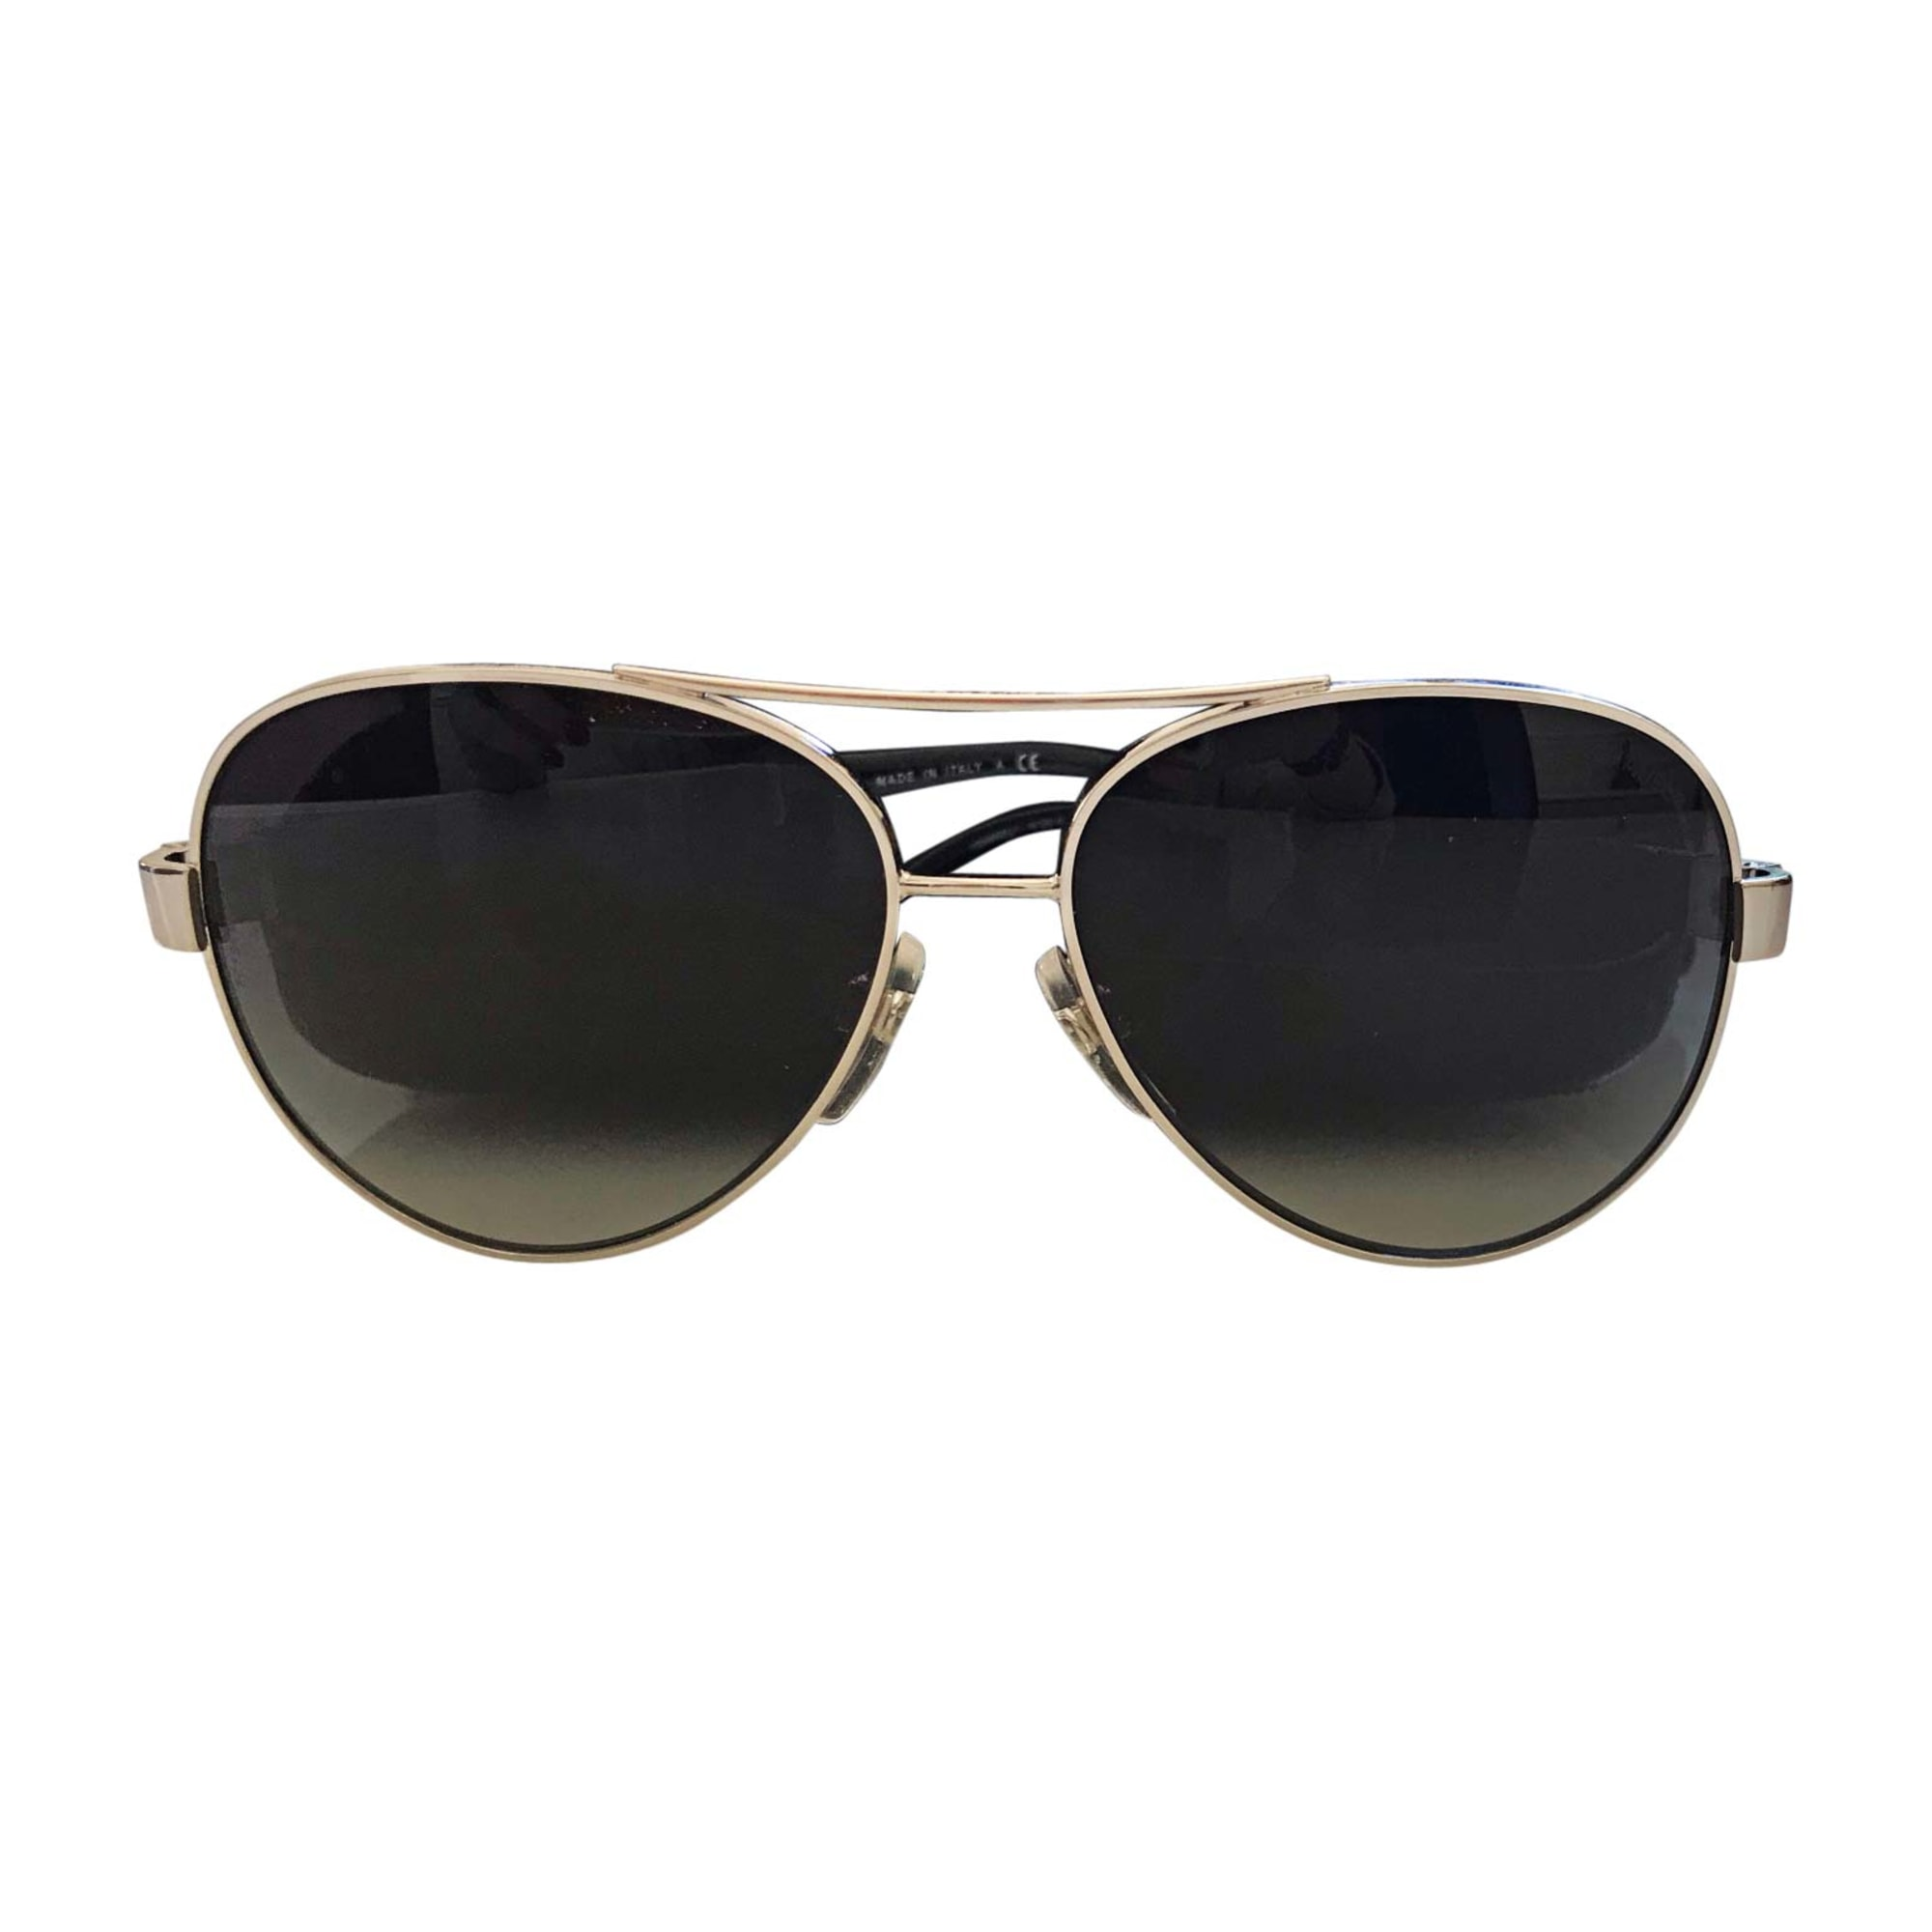 Sunglasses CHANEL Gray, charcoal